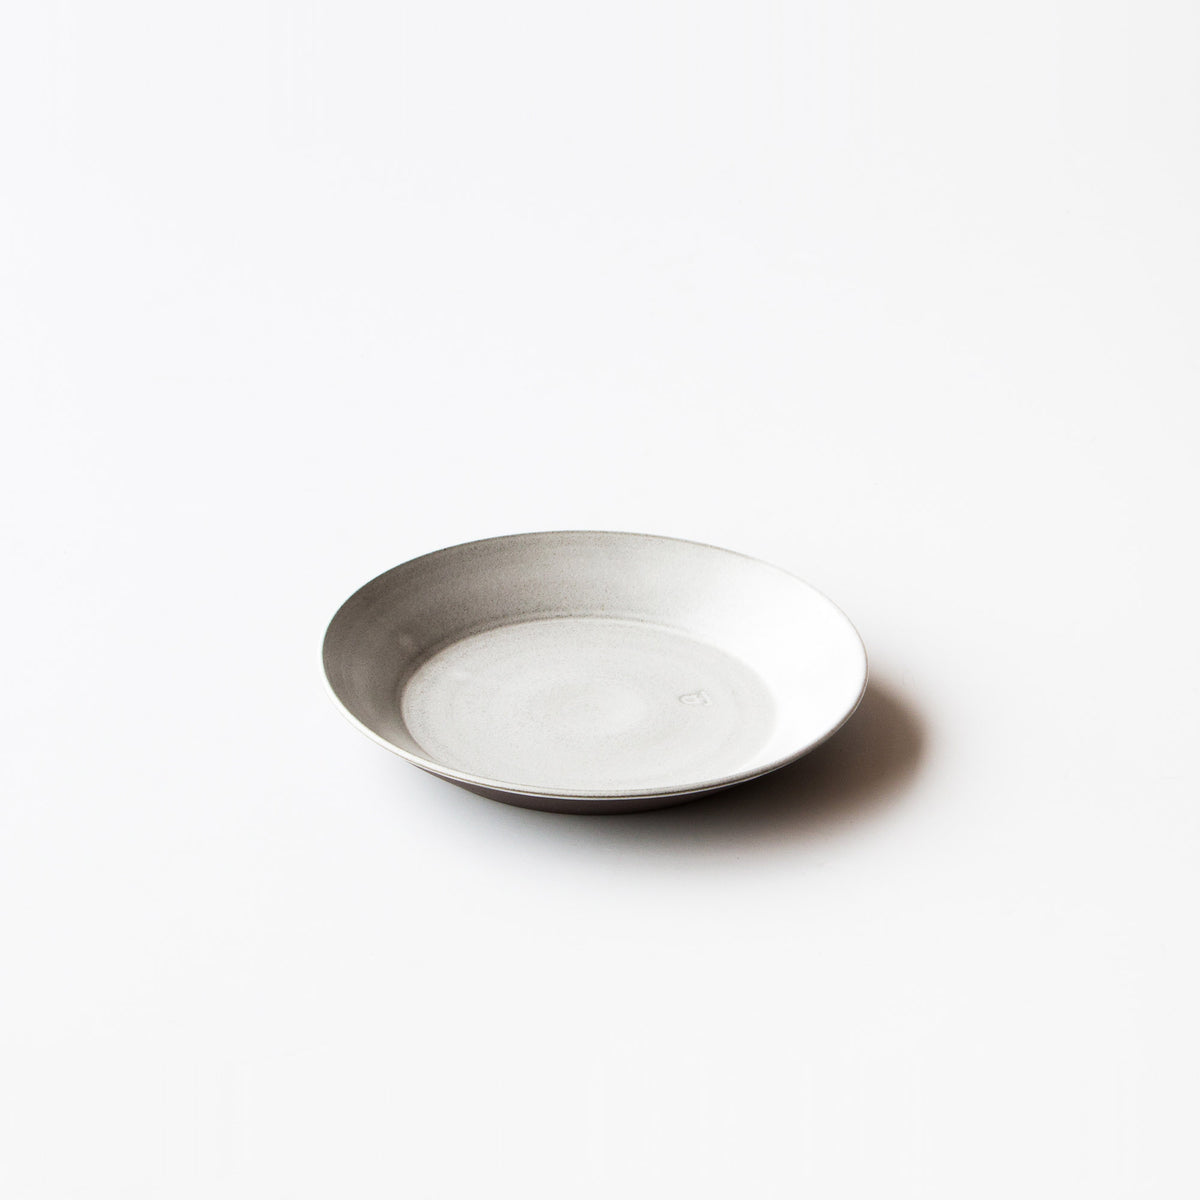 Top View - Handmade Ceramic Pie Plate / Pan Dish - Sold by Chic & Basta